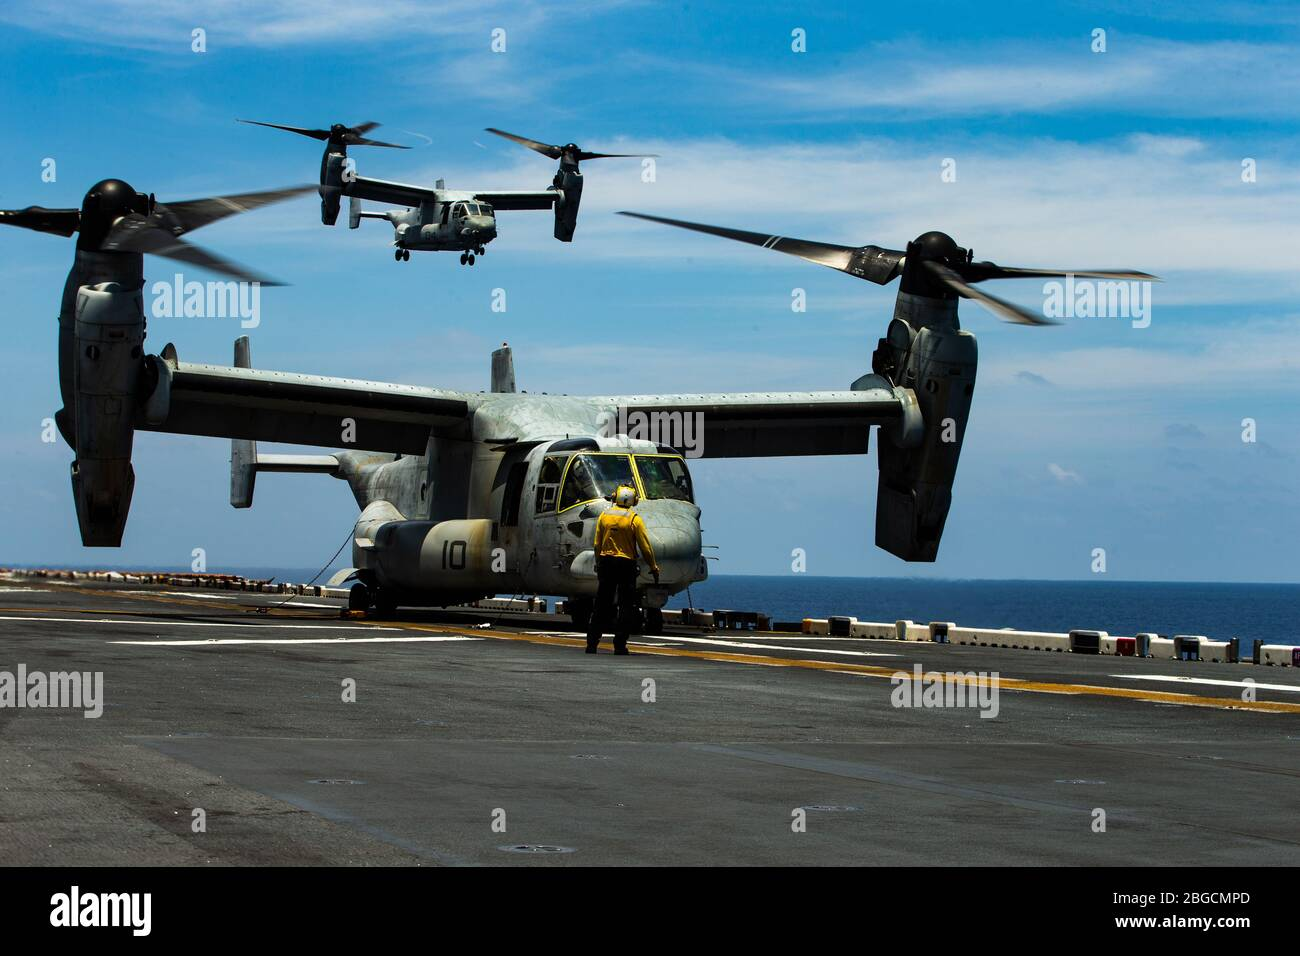 SOUTH CHINA SEA (April 18, 2020) ) An MV-22B Osprey tiltrotor aircraft with Marine Medium Tiltrotor Squadron (VMM) 265 (Reinforced), 31st Marine Expeditionary Unit (MEU), takes off from the flight deck of amphibious assault ship USS America (LHA 6). Marines and Sailors aboard the America regularly conduct flight operations while underway to maintain their readiness to respond to contingencies. The Osprey is a long-range troop transport aircraft that can be deployed at a moment's notice, enabling the Blue-Green team to rapidly respond to crises. America, flagship of the America Expeditionary St Stock Photo